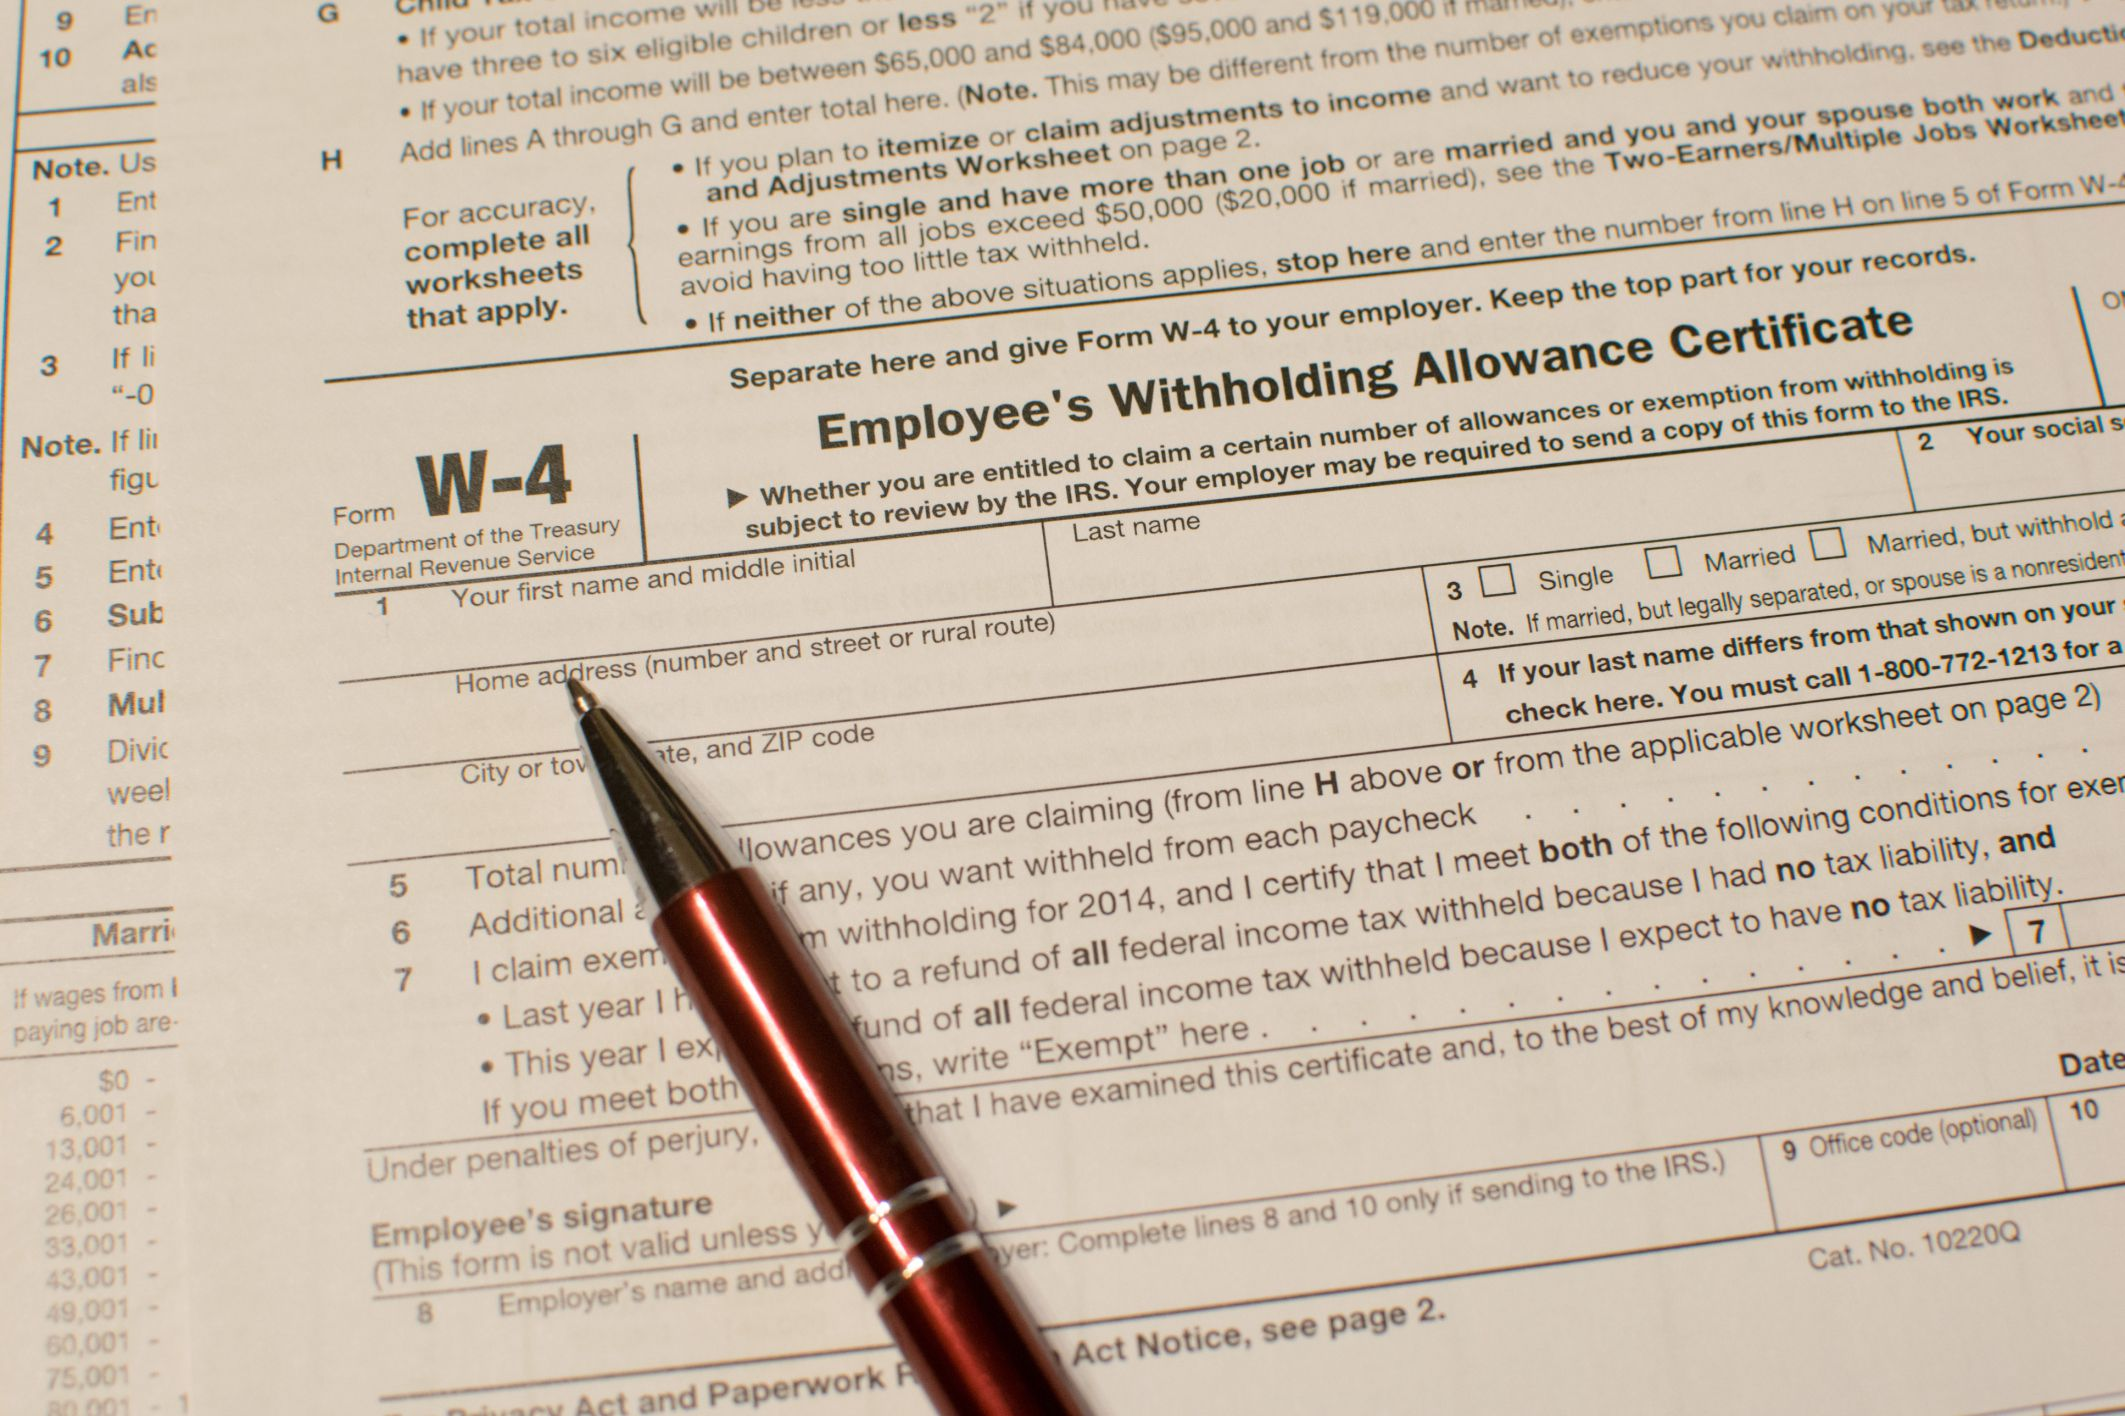 IRS Form W-9 – What It Is and How to Fill It Out